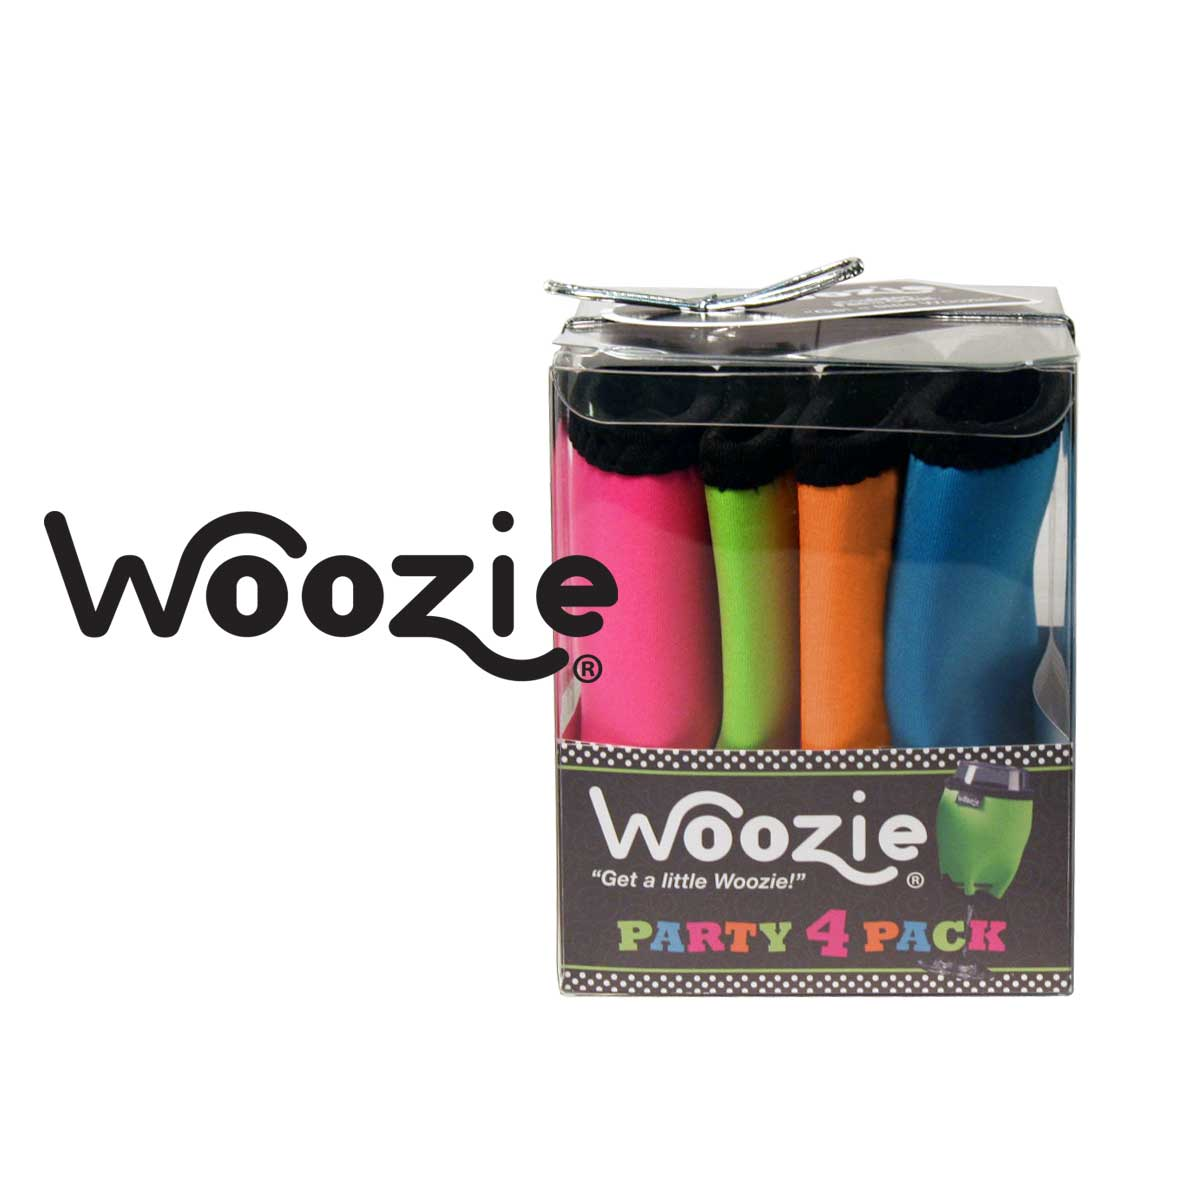 Woozie Original Maui Collection Party Pack